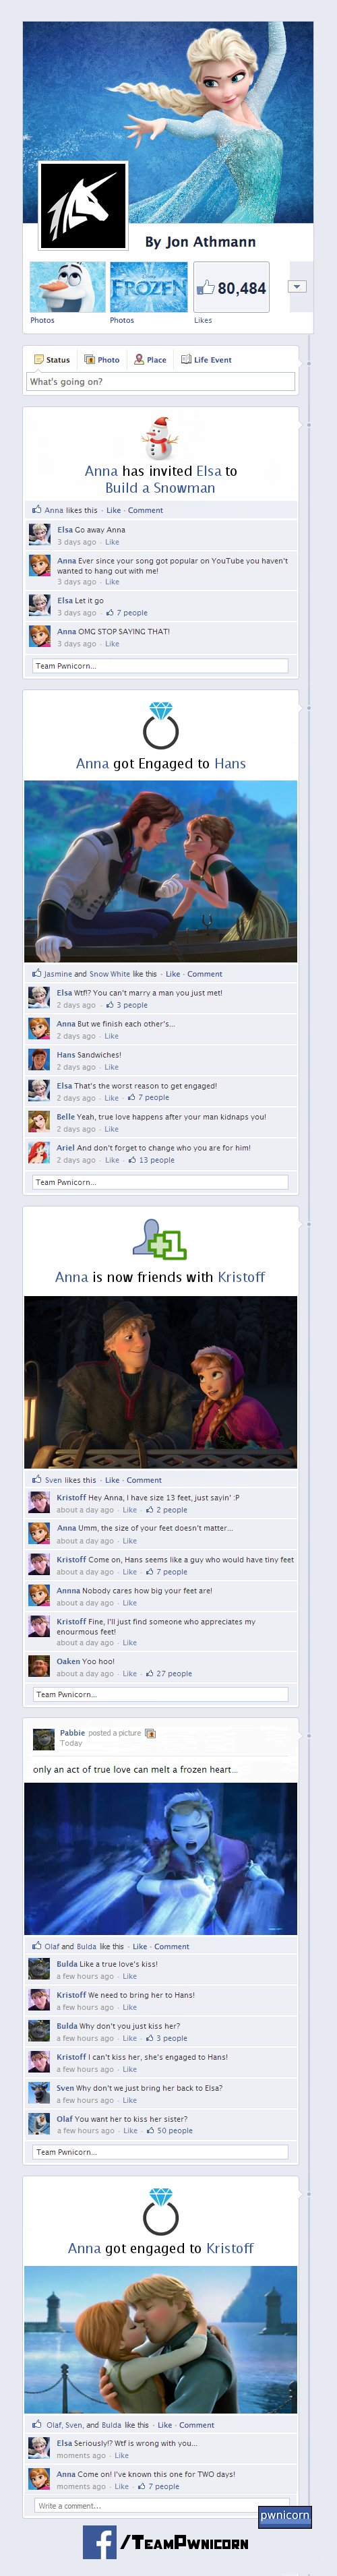 What if the Characters from Frozen Were on Facebook?